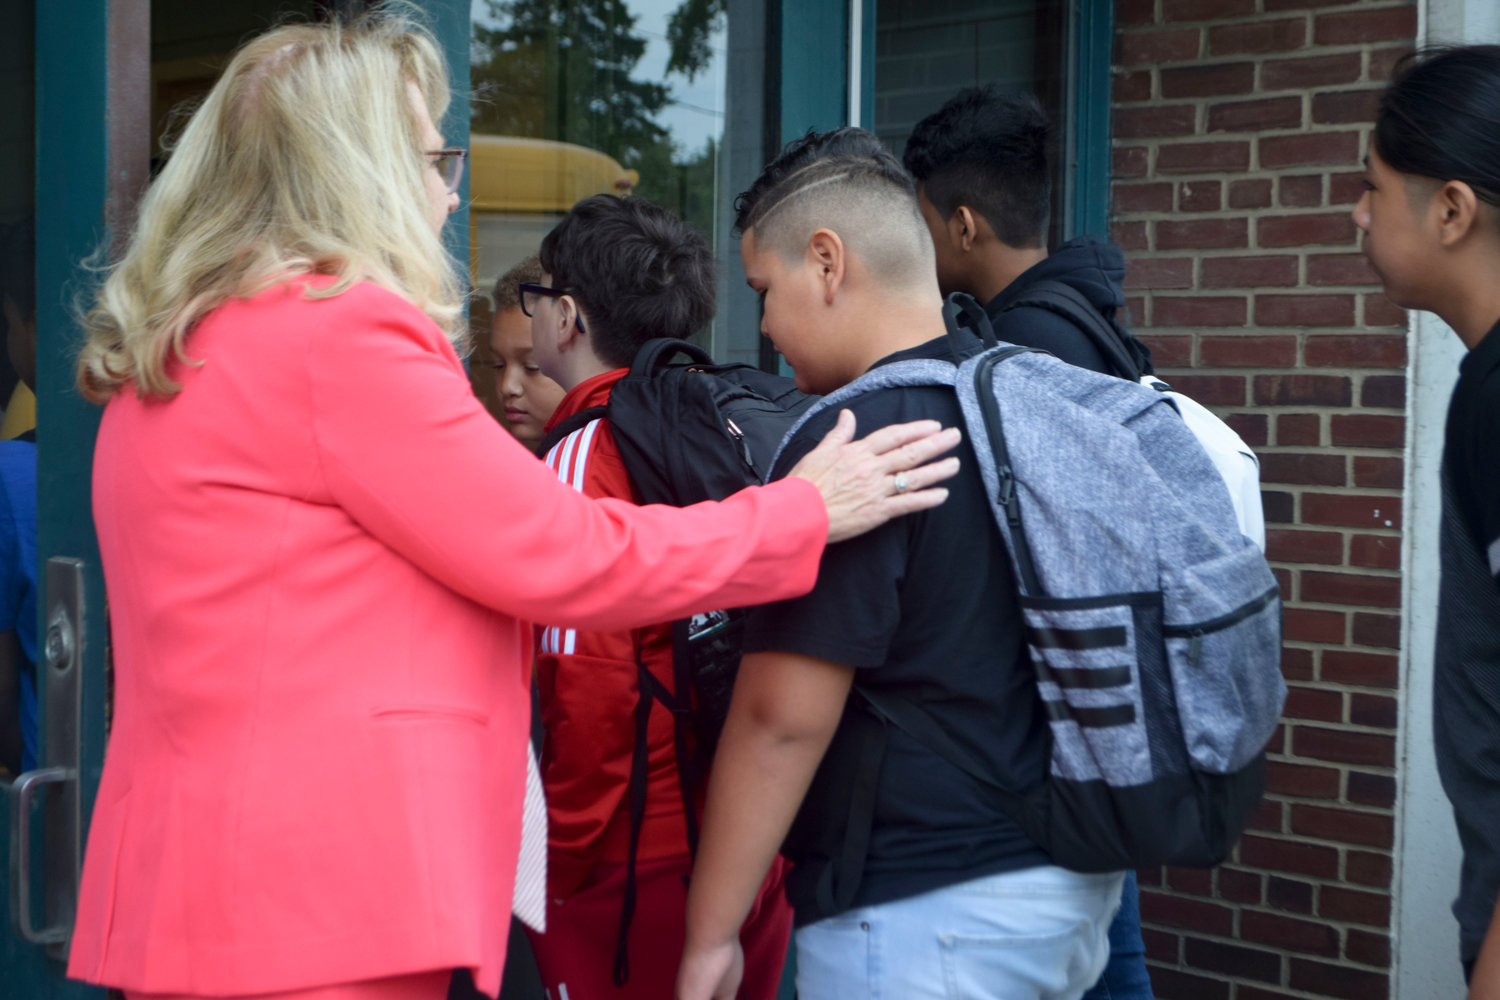 Lawrence School District Superintendent Dr. Ann Pedersen lent her personal touch to greeting students at the middle school on the first day.